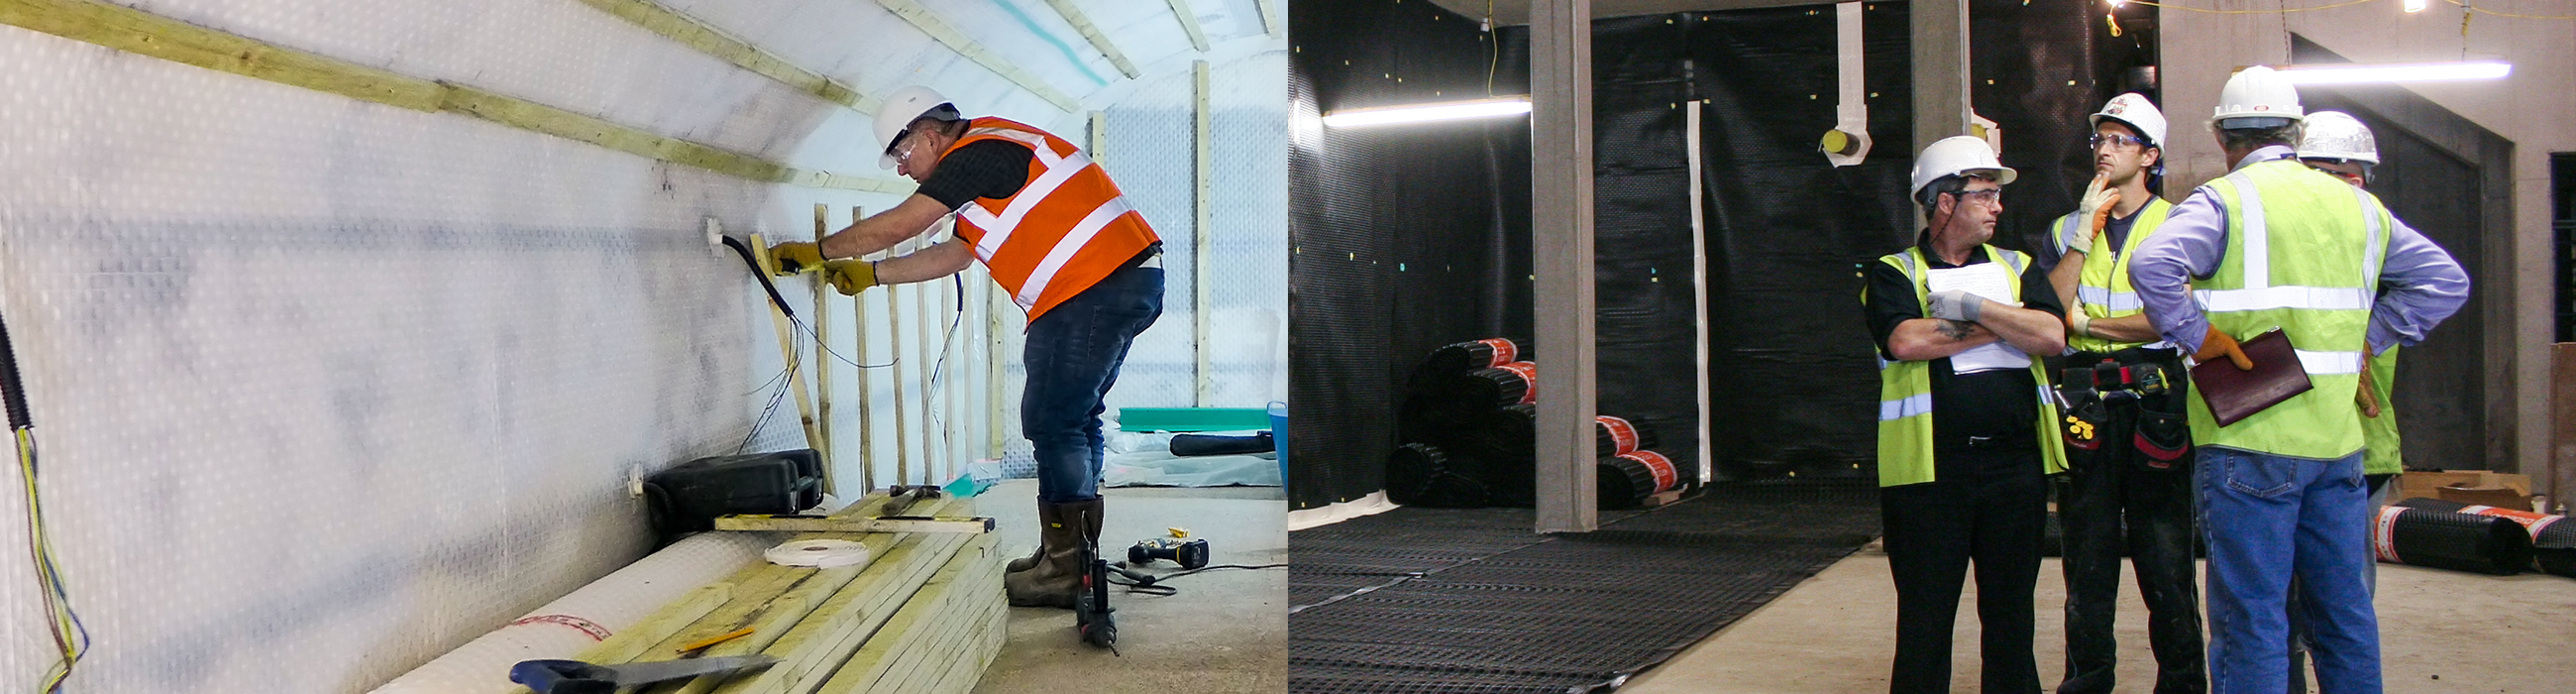 Waterproofing Basements and Underground Structures CPD Seminar (Newbuild + Refurbishment)